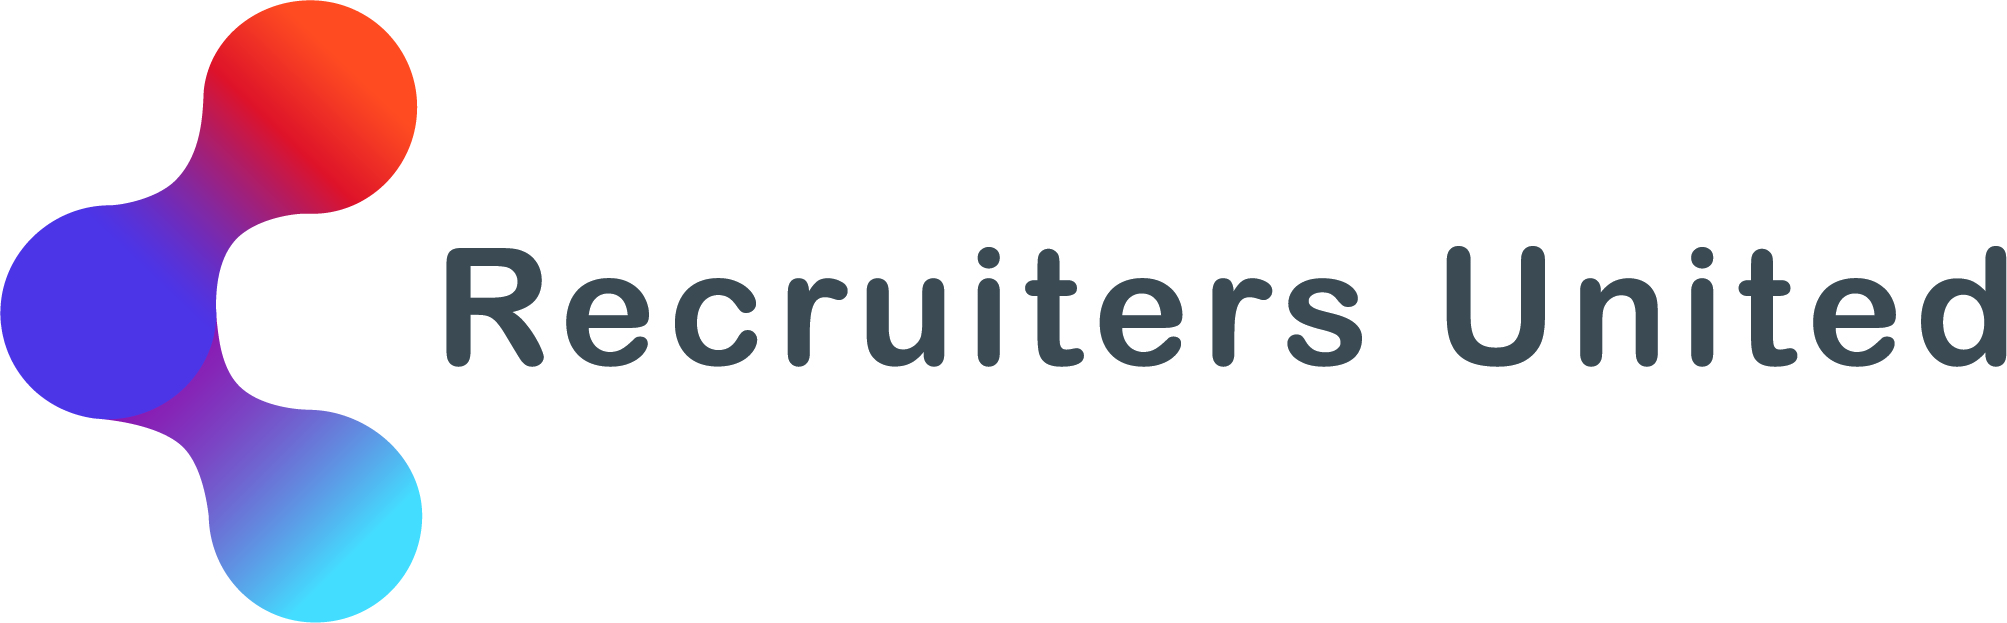 Recruiters United